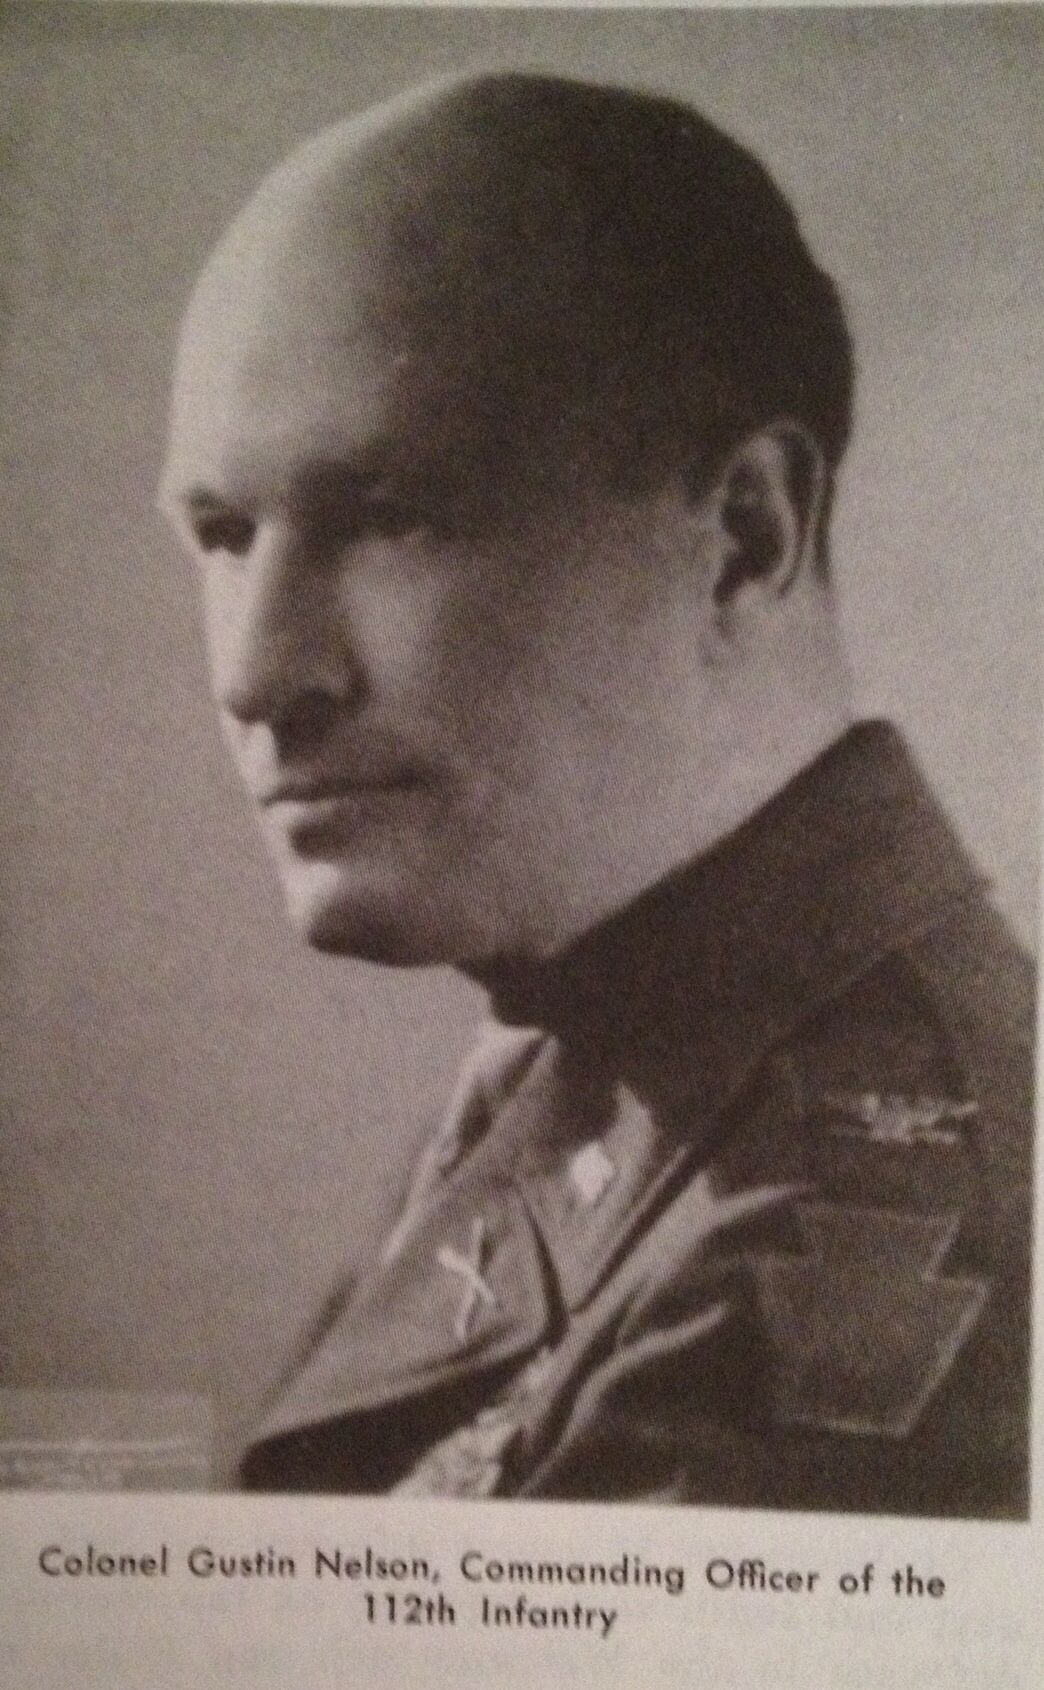 Colonel Gustin Nelson - Commanded the 112th Infantry Regiment of the 28th Infantry Division